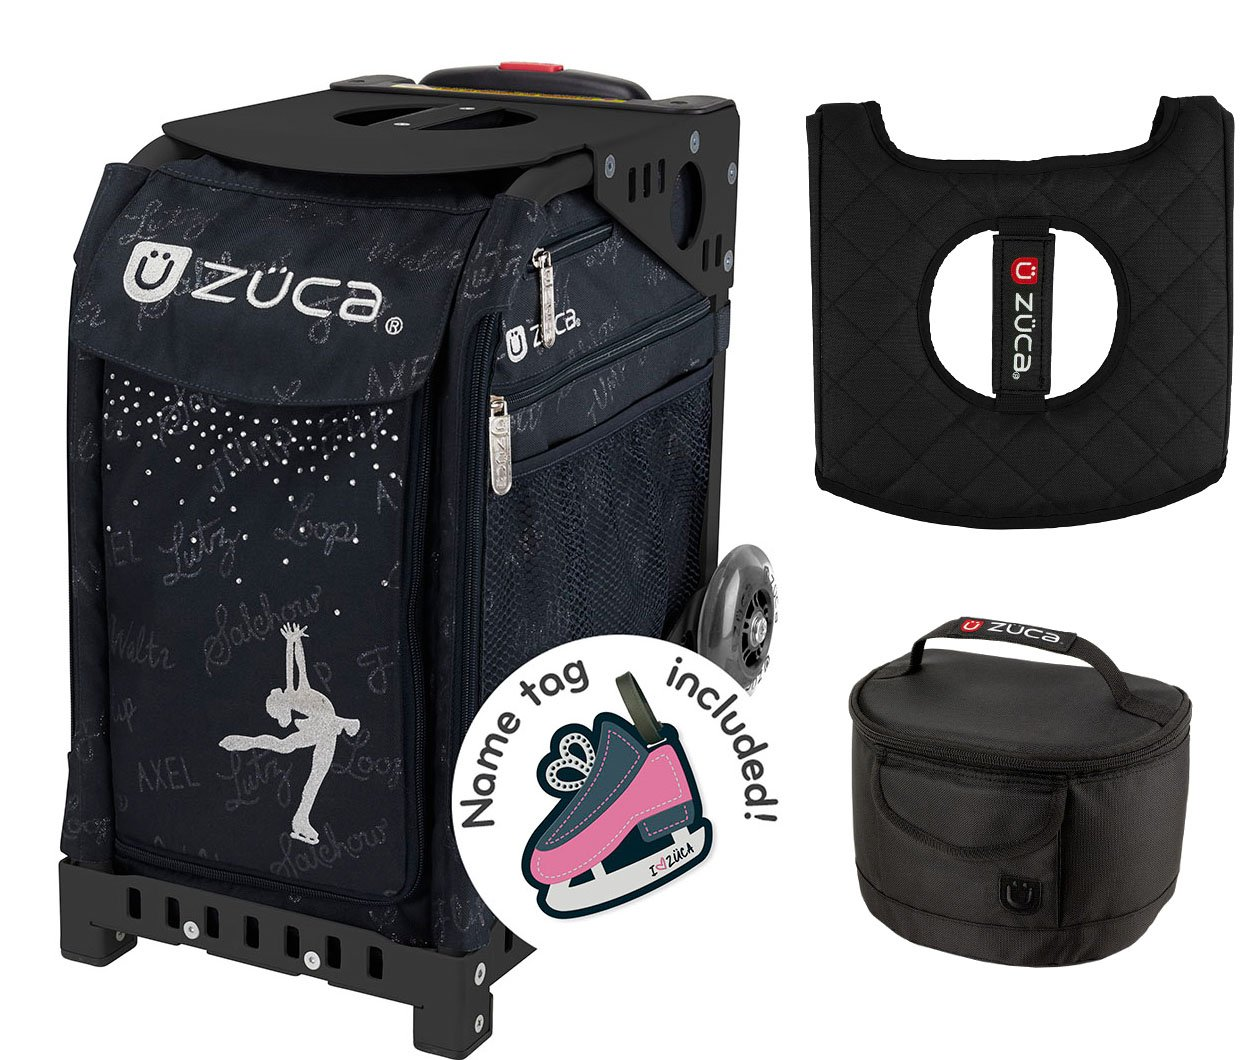 Zuca Sport Bag - Ice Queen with Gift Lunchbox and Seat Cover (Black Frame) by ZUCA